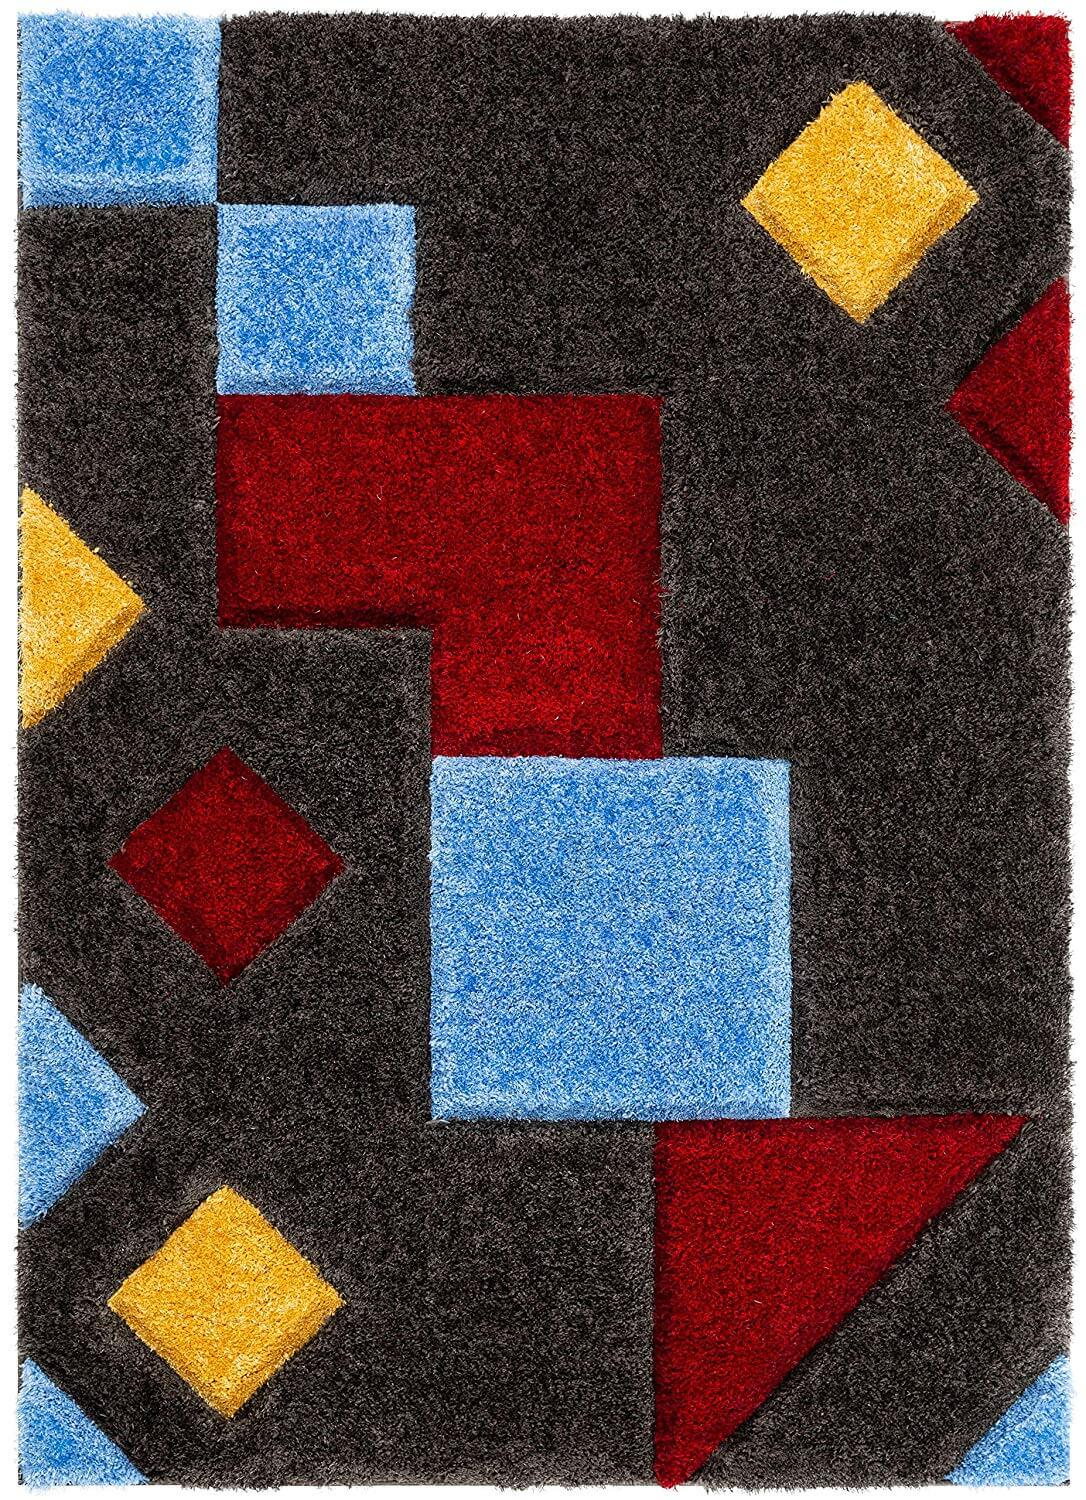 A grey rug with several multi-colored geometric shapes.